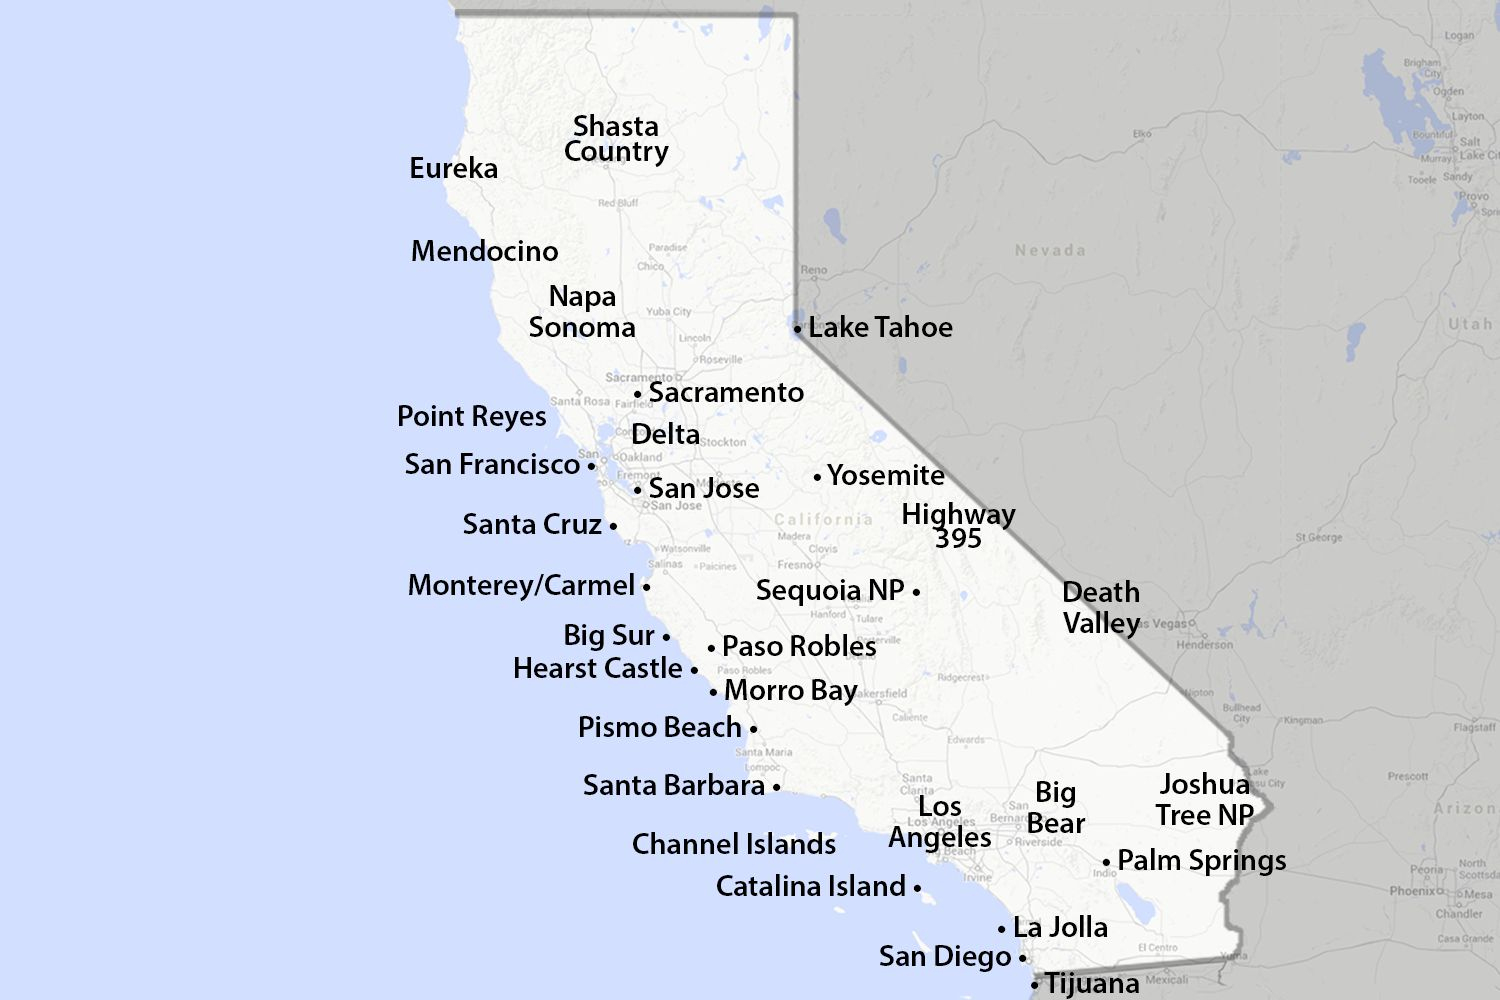 San Diego On California Map - Klipy - San Diego On The Map Of California